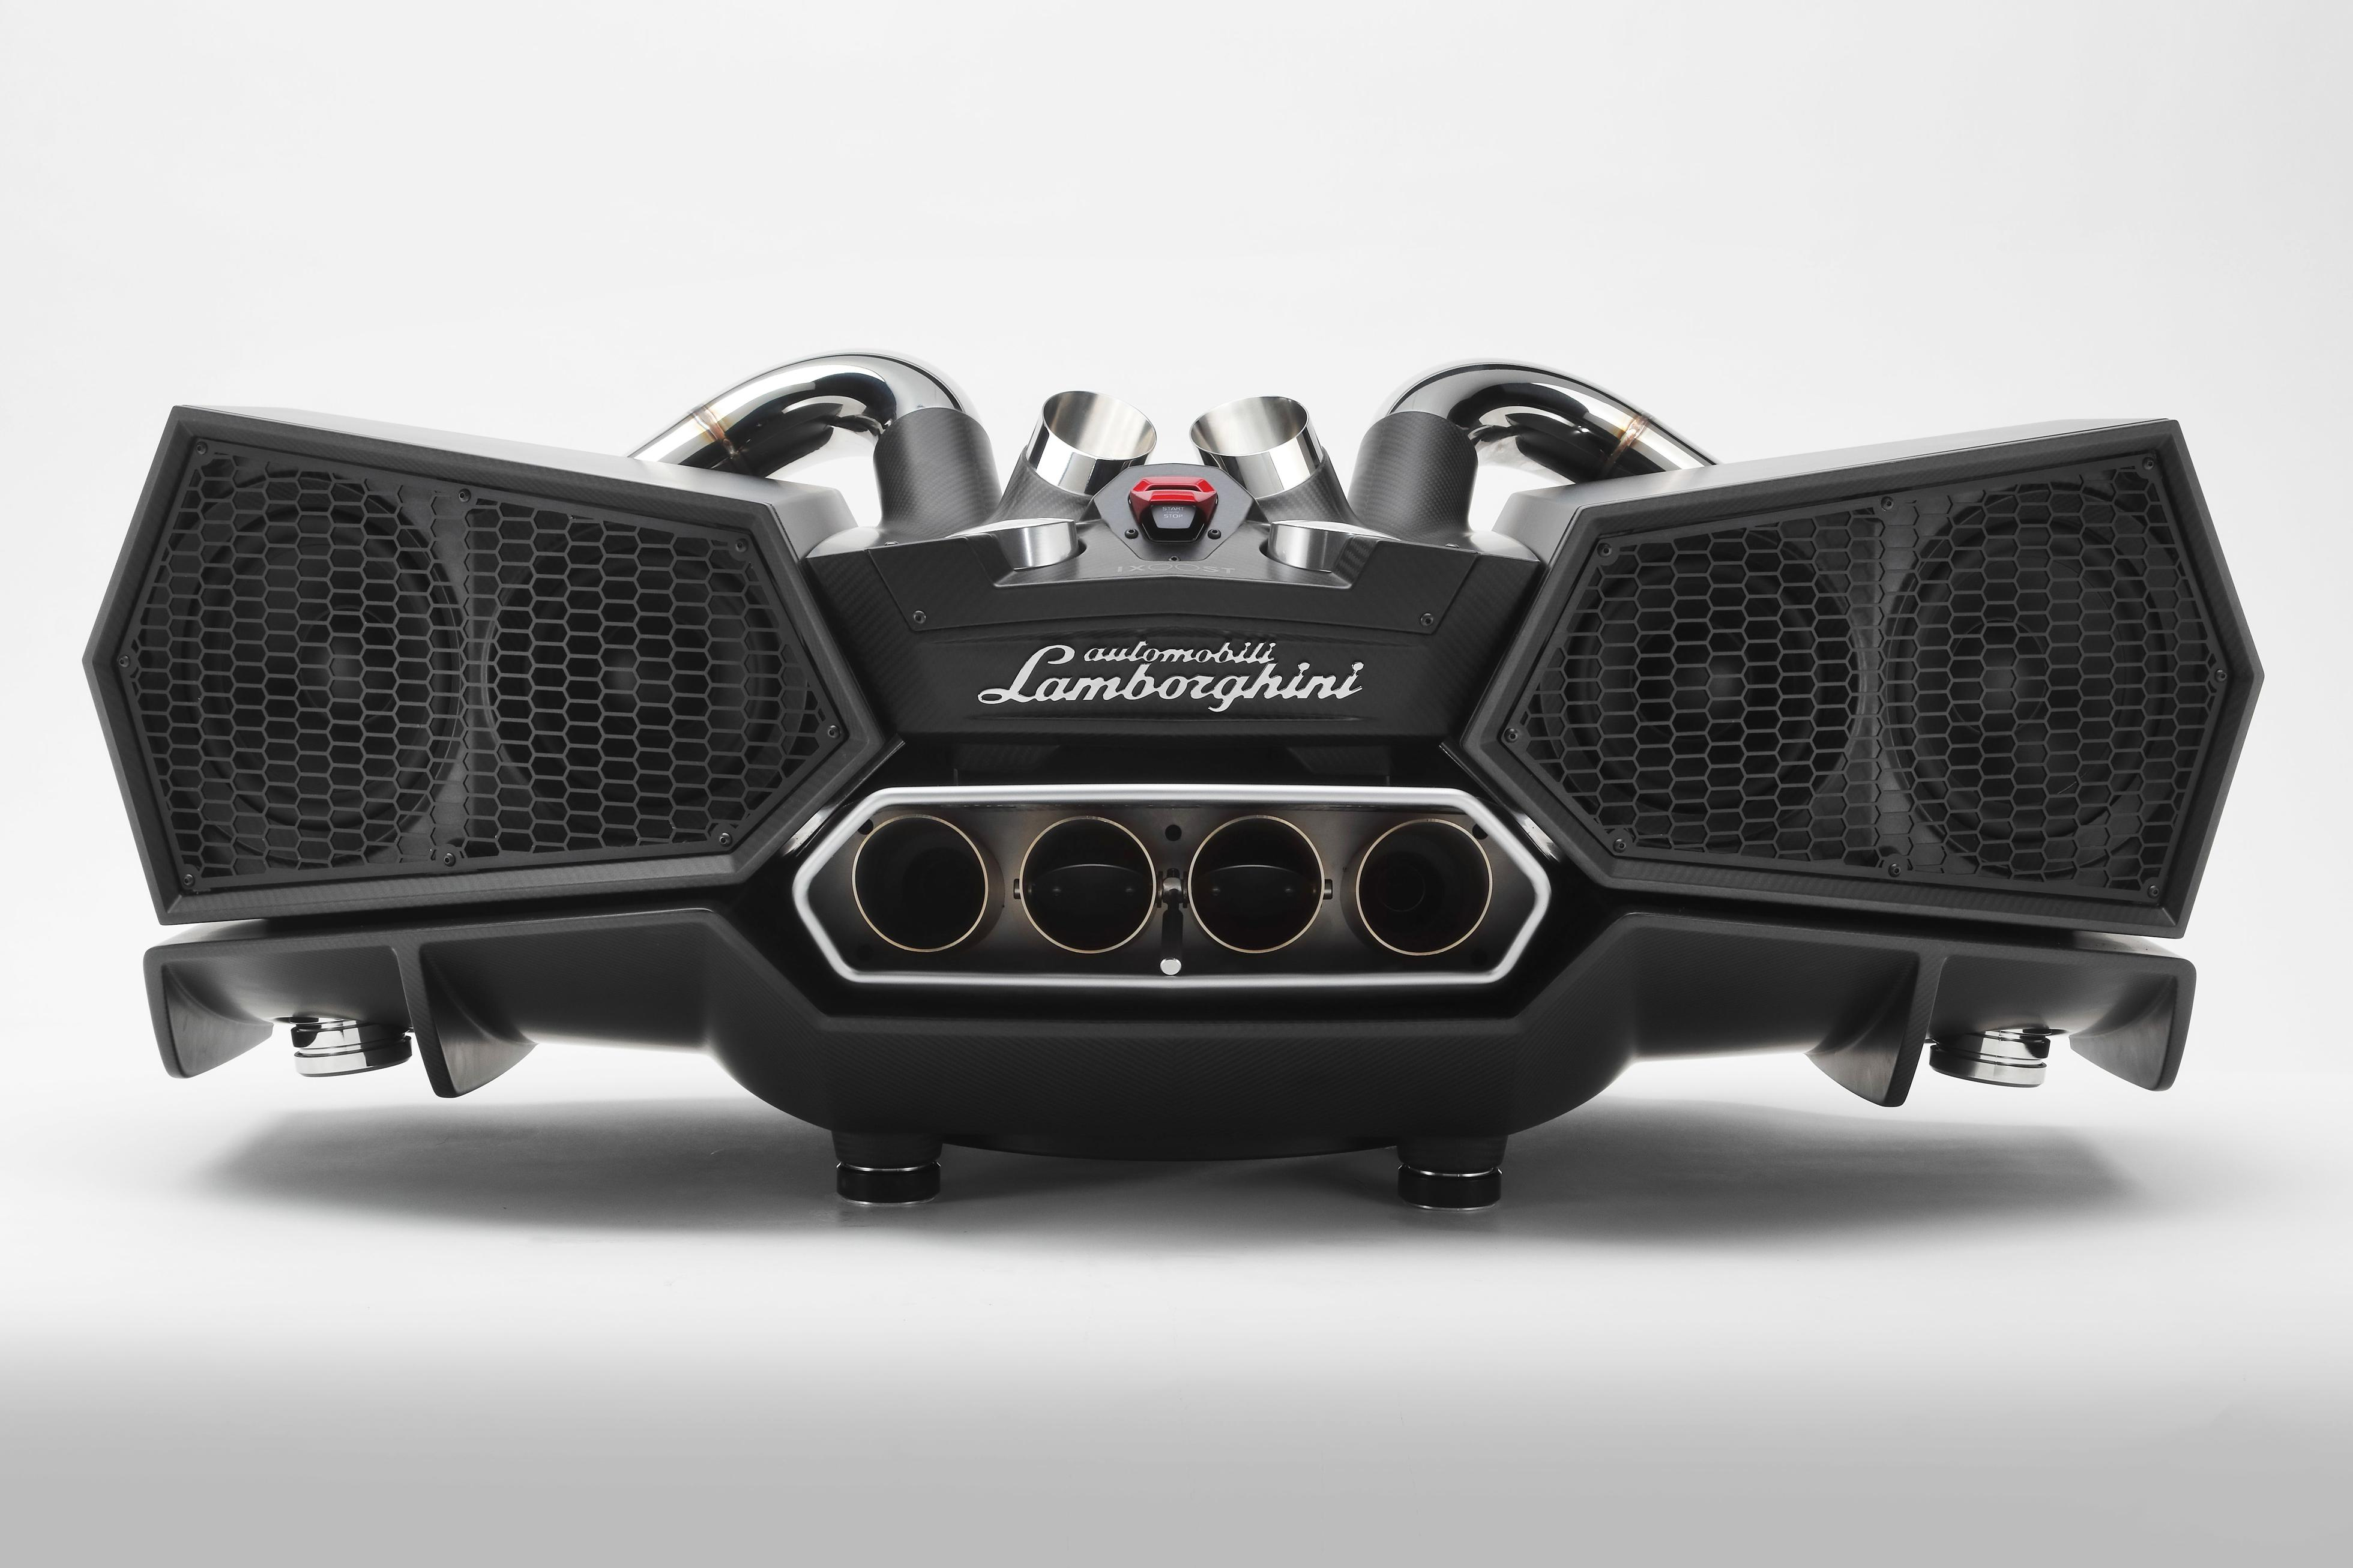 s want lamborghini aventador summer news gallery will exhaust roadster parts photo back features you your make